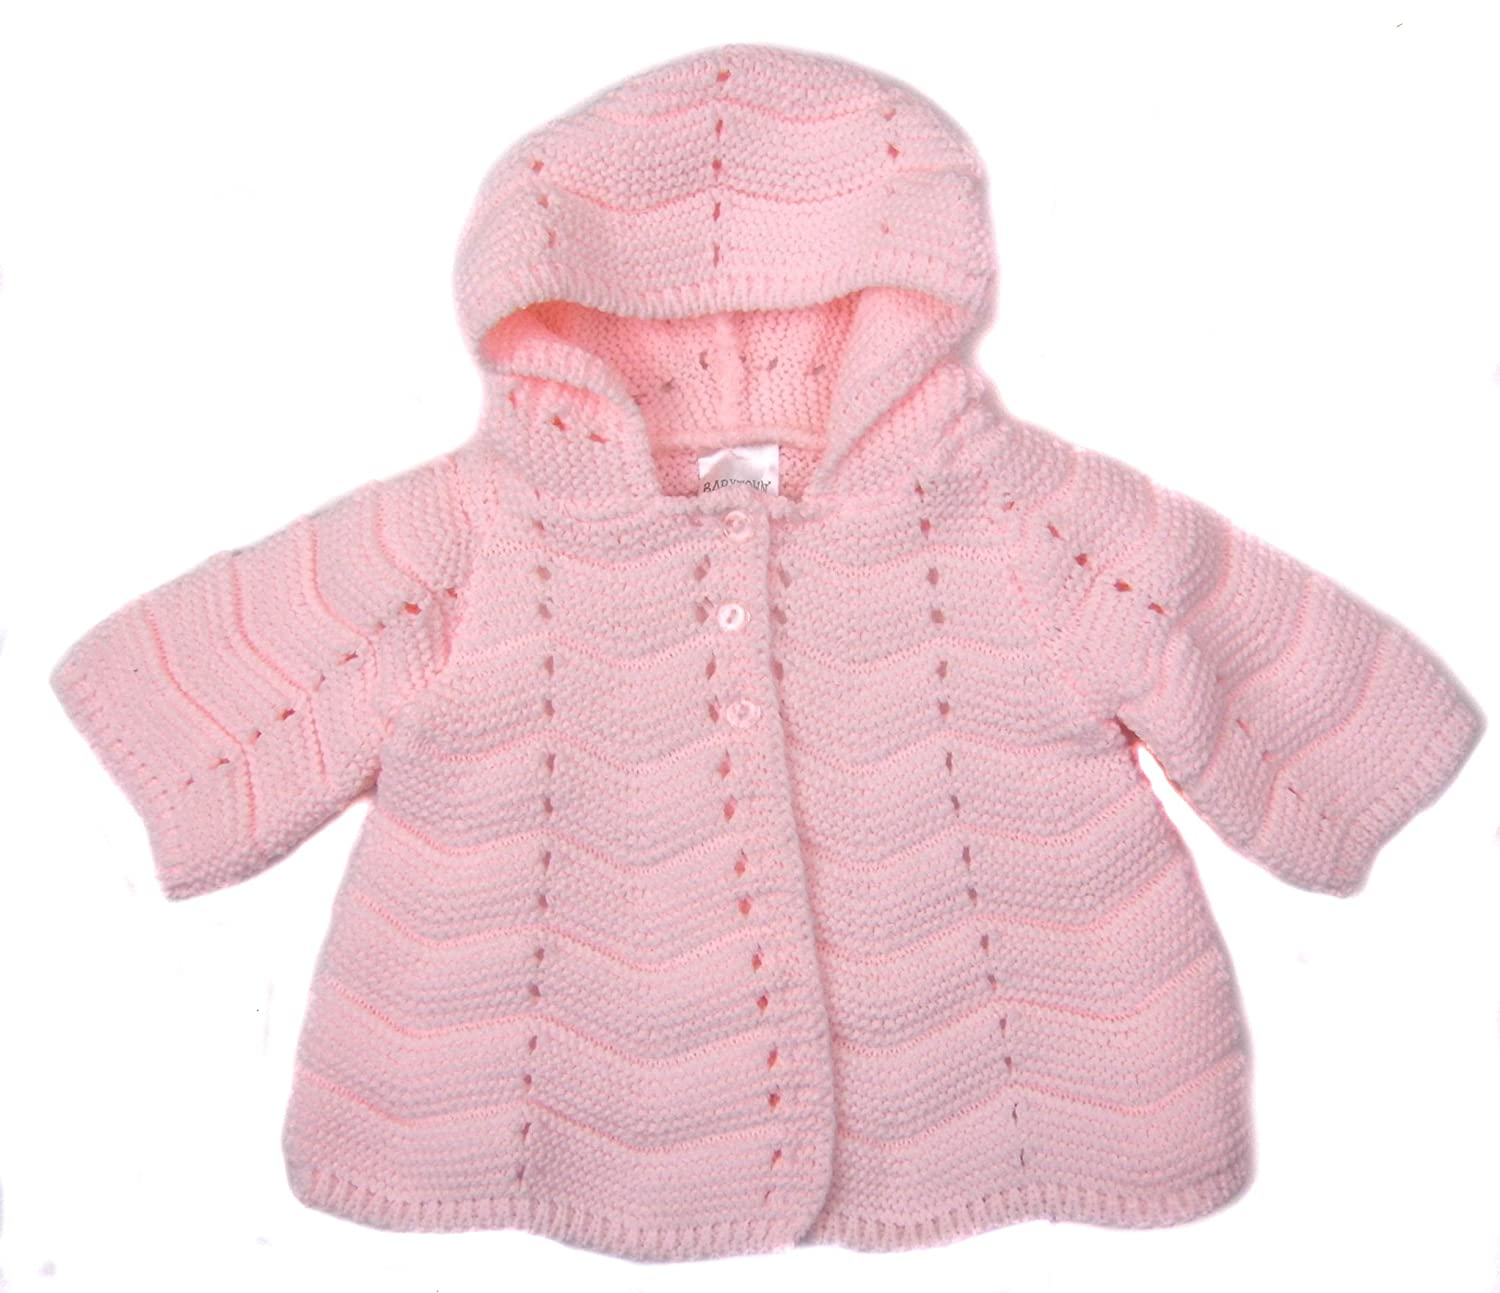 Baby Cardigan Hooded Jacket Traditional Styling Pink or White